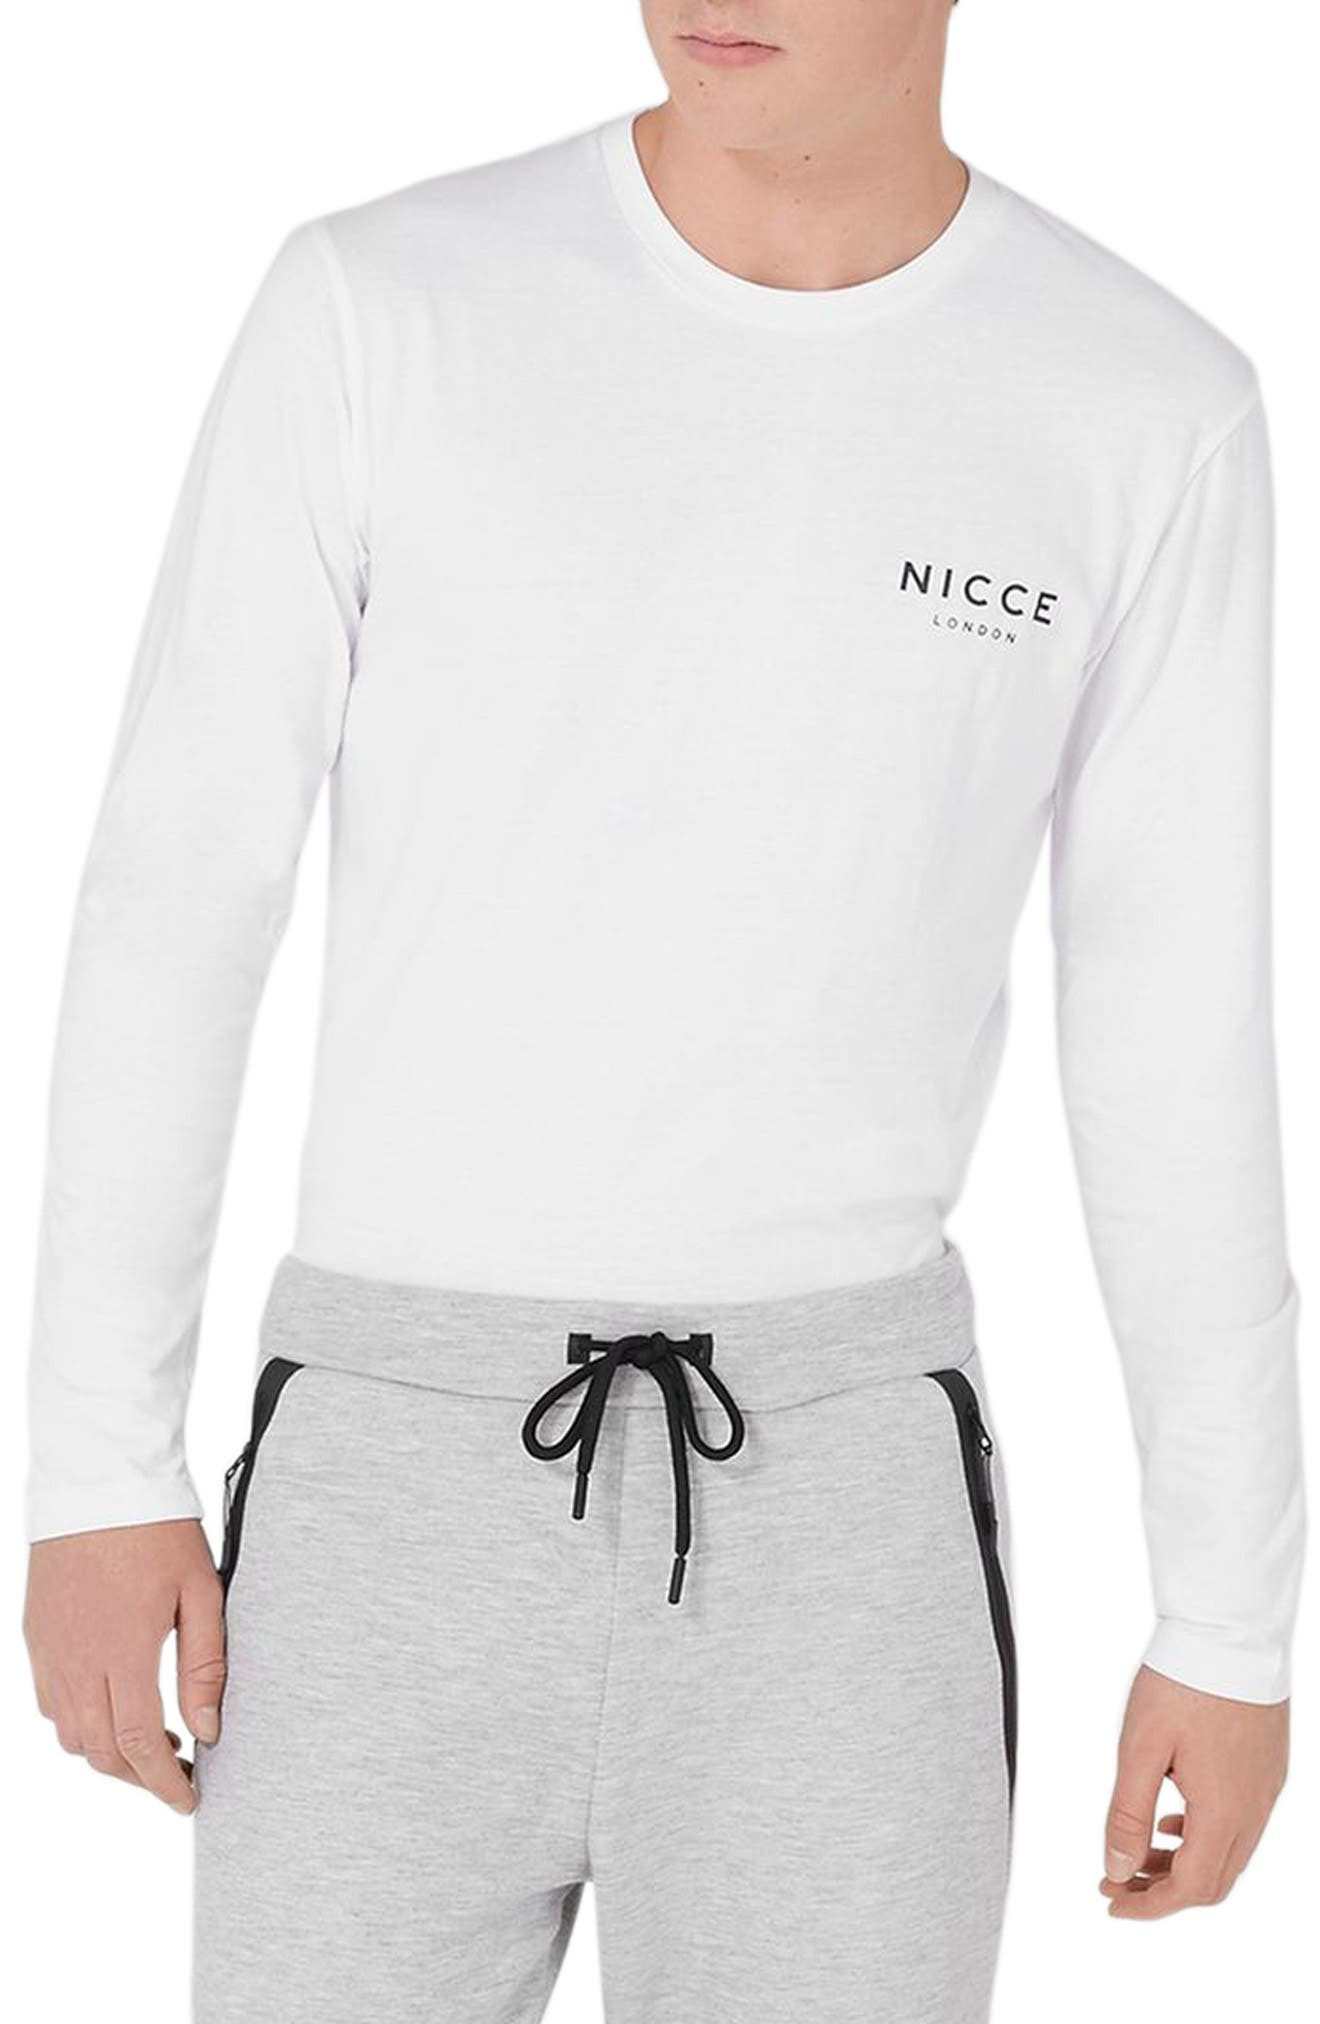 Main Image - Topman NICCE Graphic Long Sleeve T-Shirt